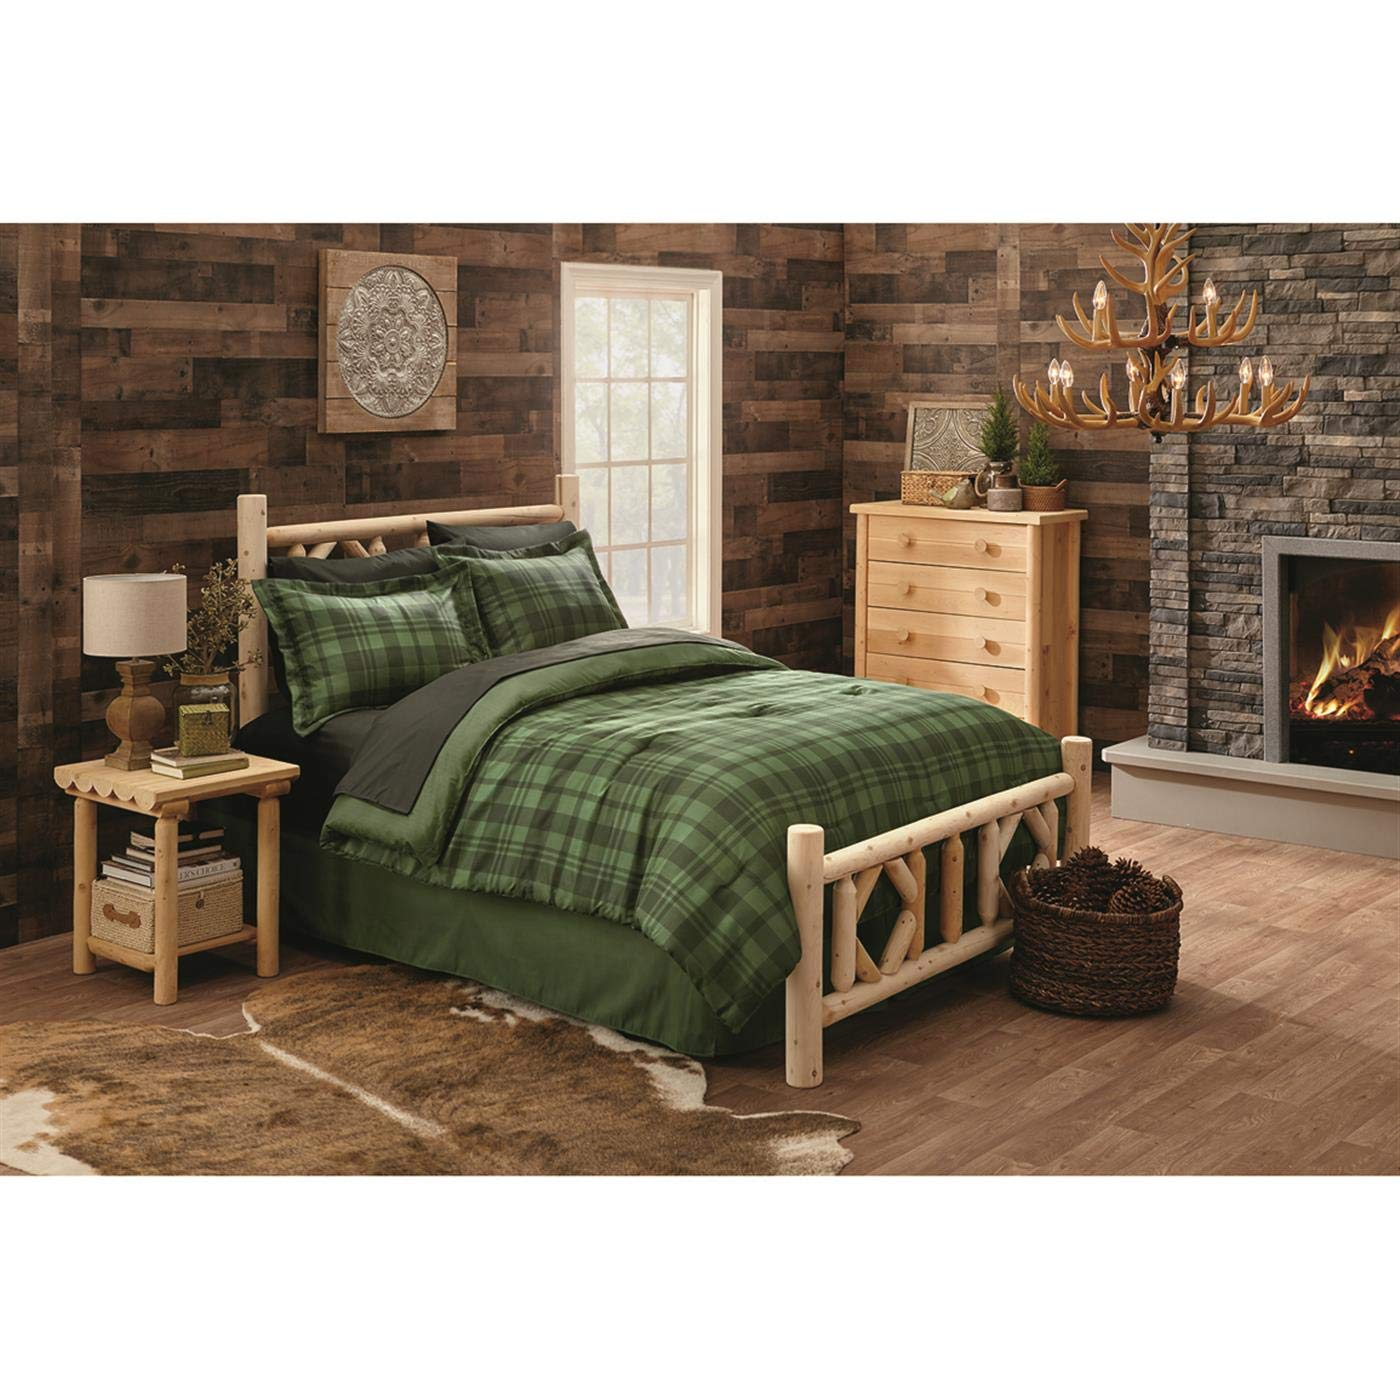 CASTLECREEK Diamond Cedar Log Bed, Queen by CASTLECREEK